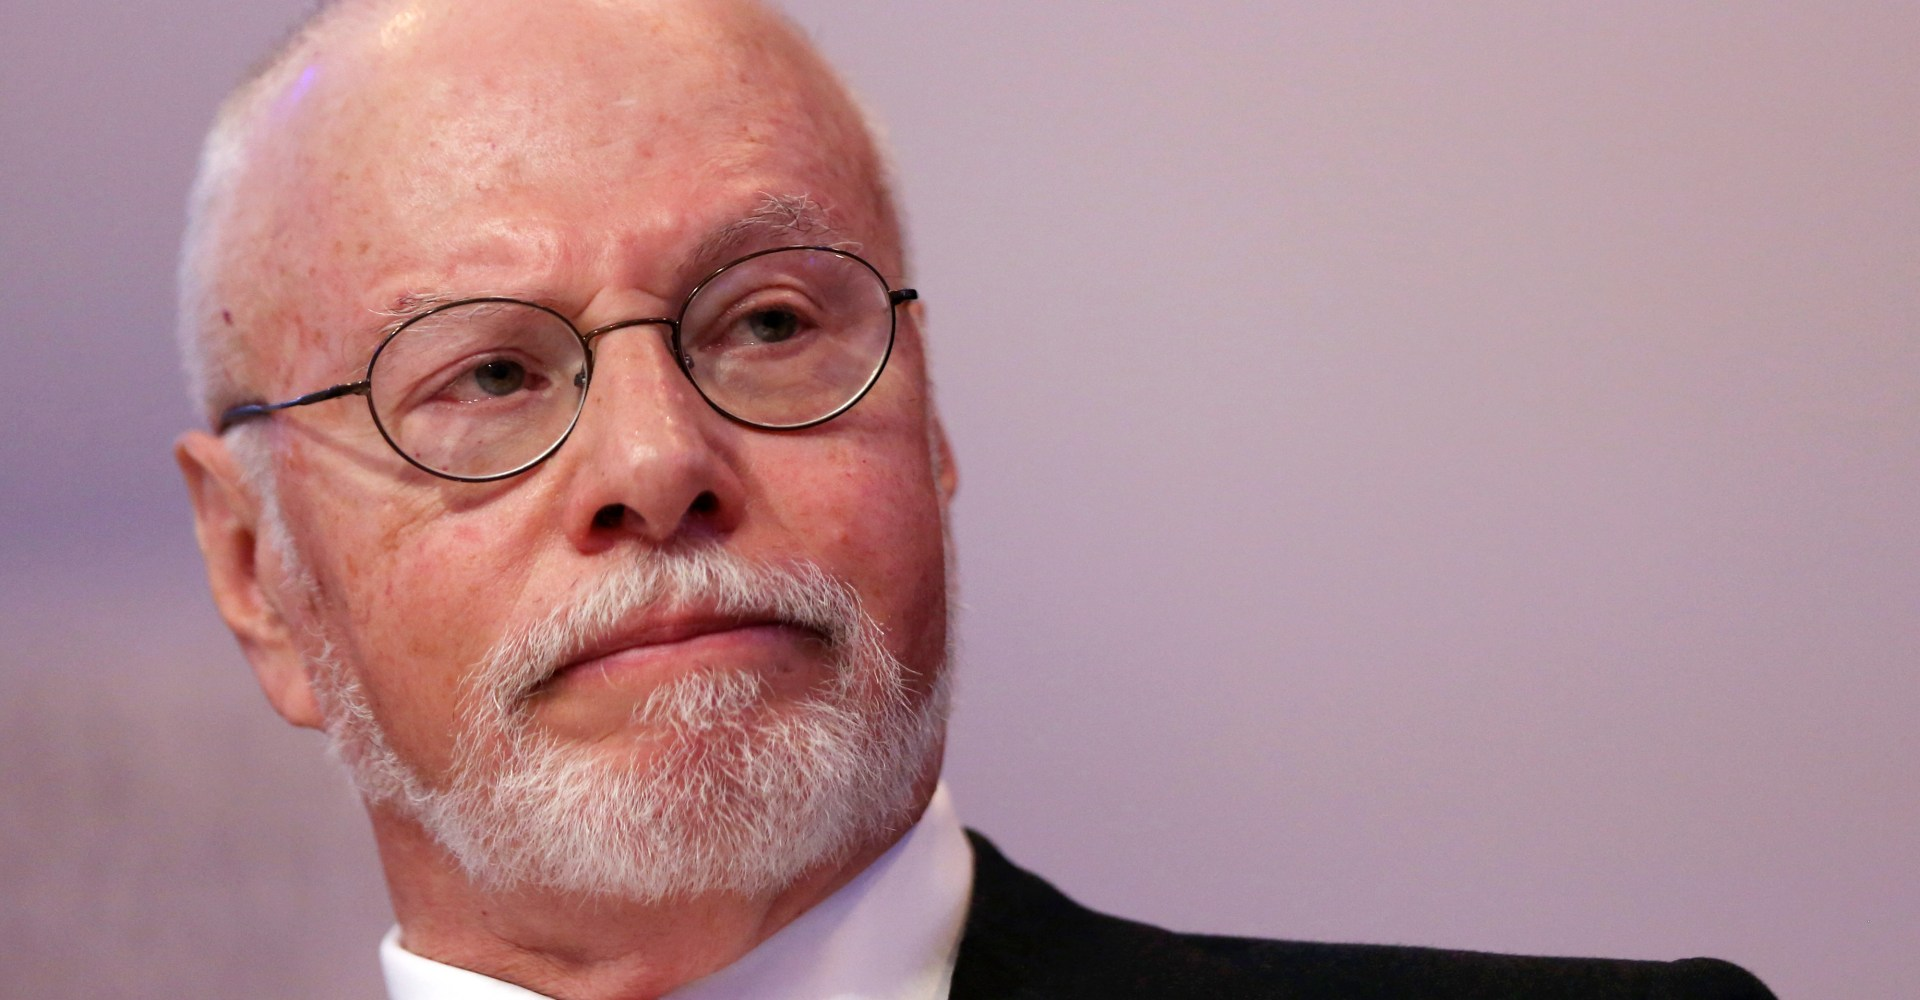 Paul Singer, billionaire and chief executive officer of Elliott Management Corp.